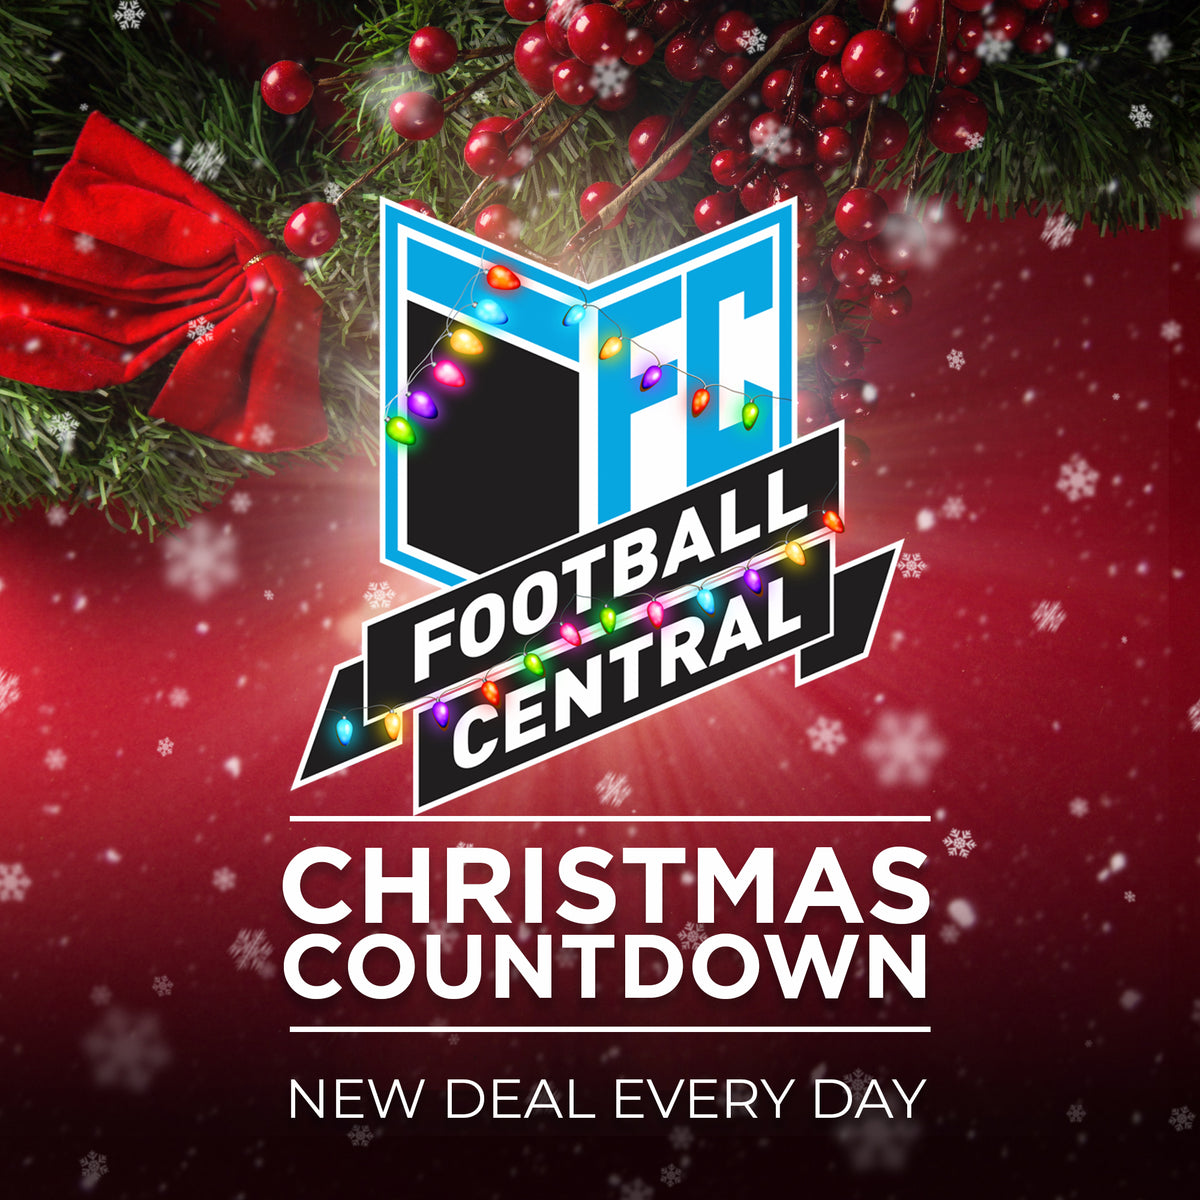 Christmas Countdown 🎄 New Deal Every Day!